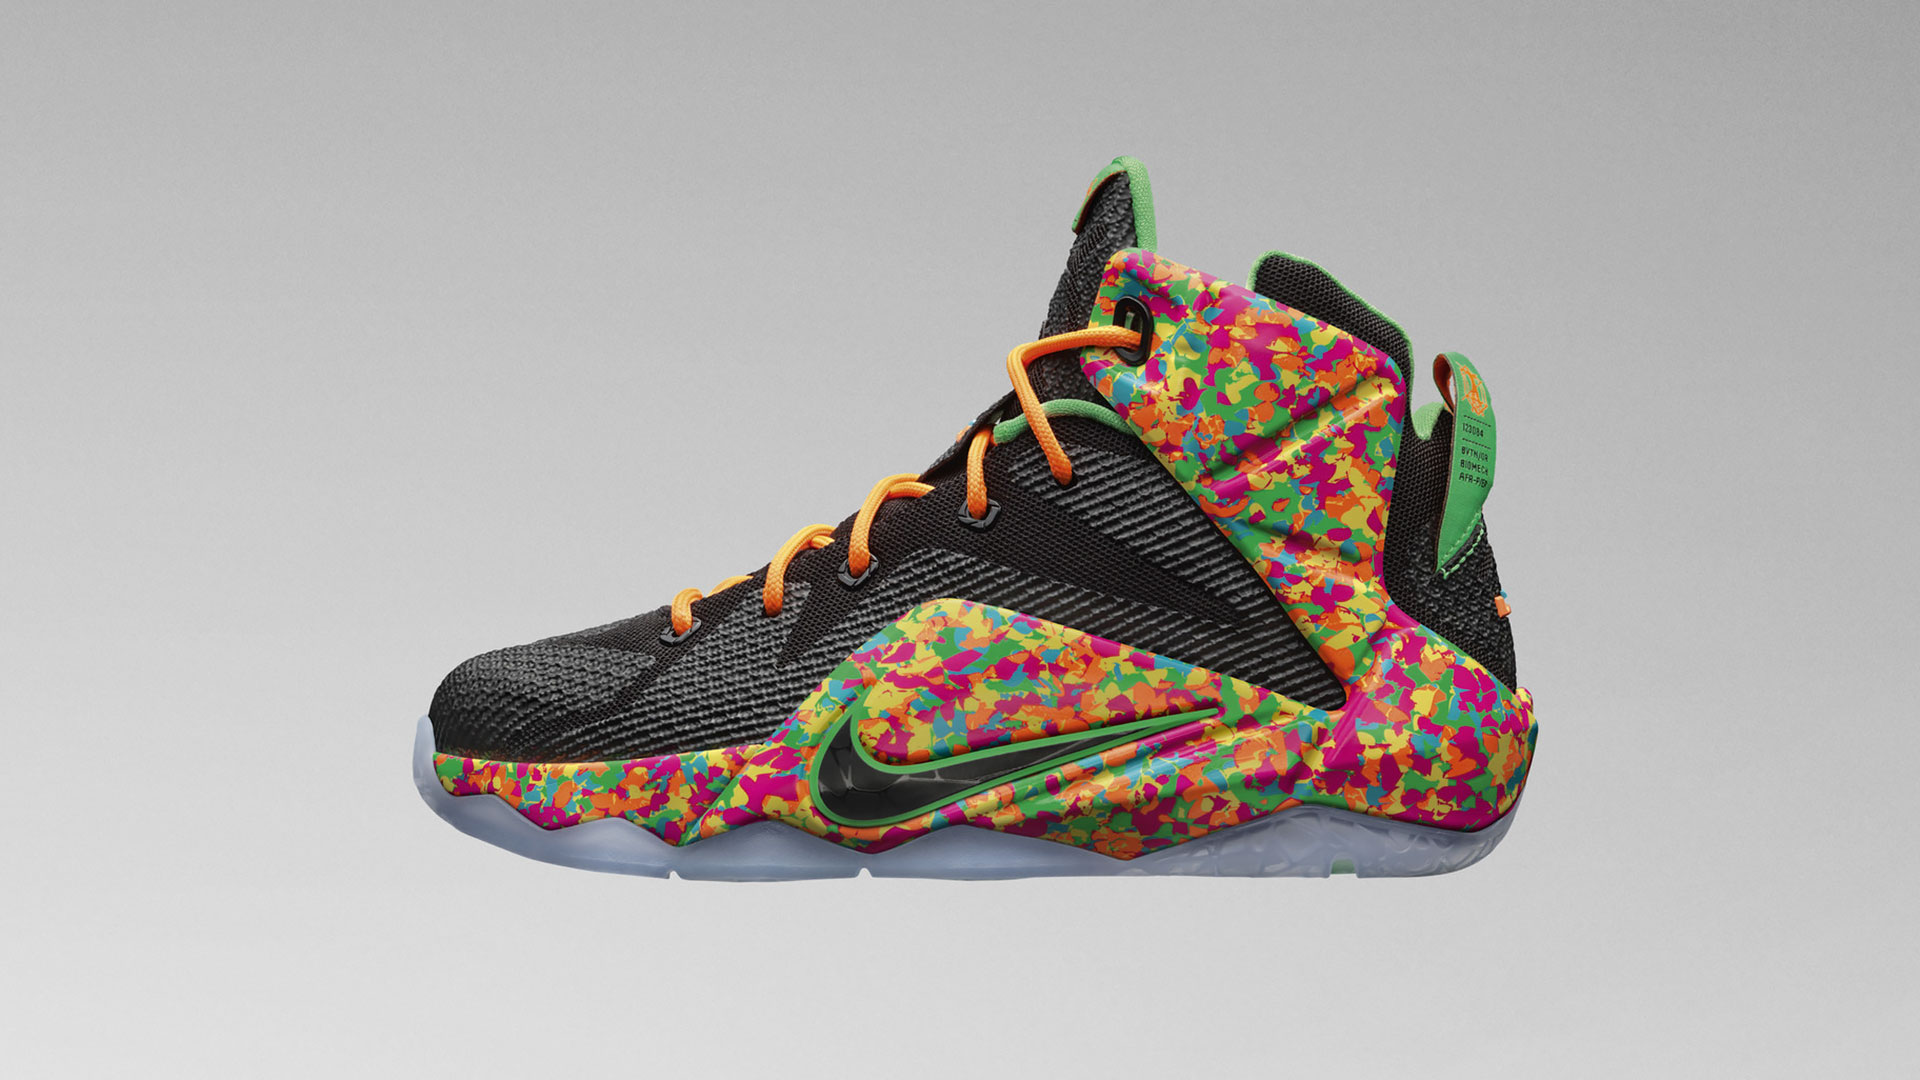 buy popular 54f76 8ac49 LEBRON 12 Cereal shoes | Sporting News